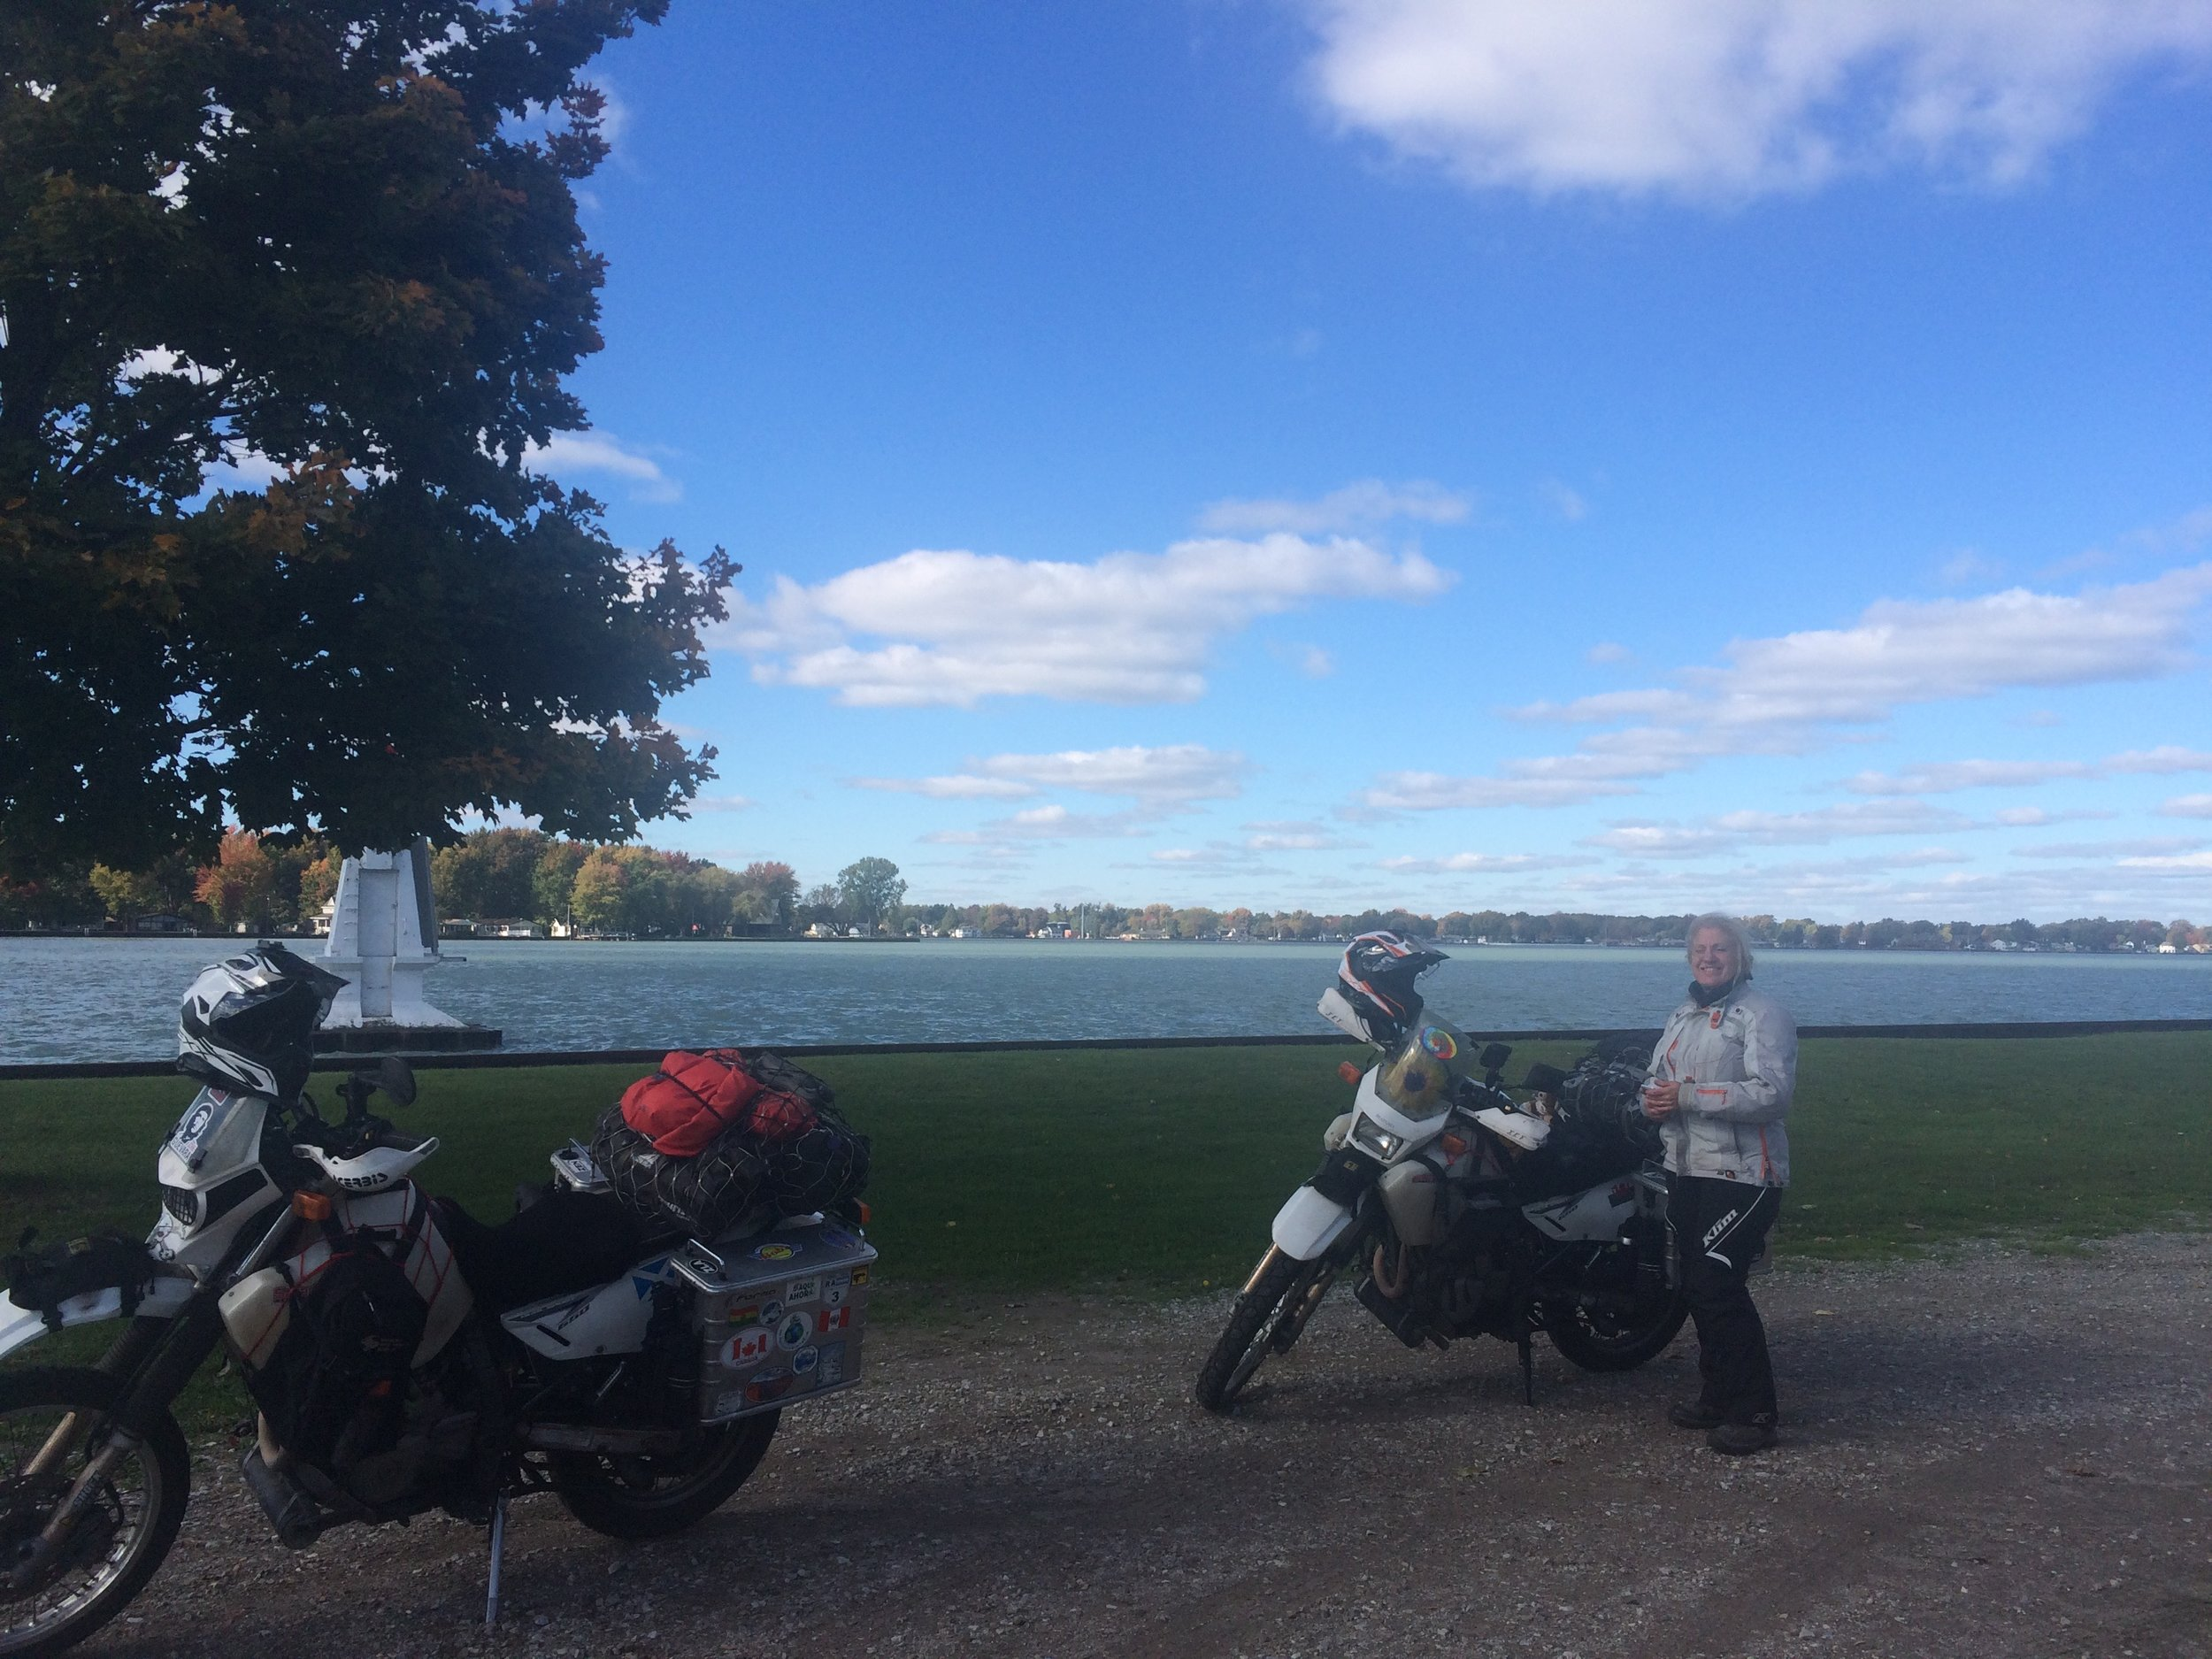 Yay! Back in Canada - Walpole Island. St Clair River in the background.